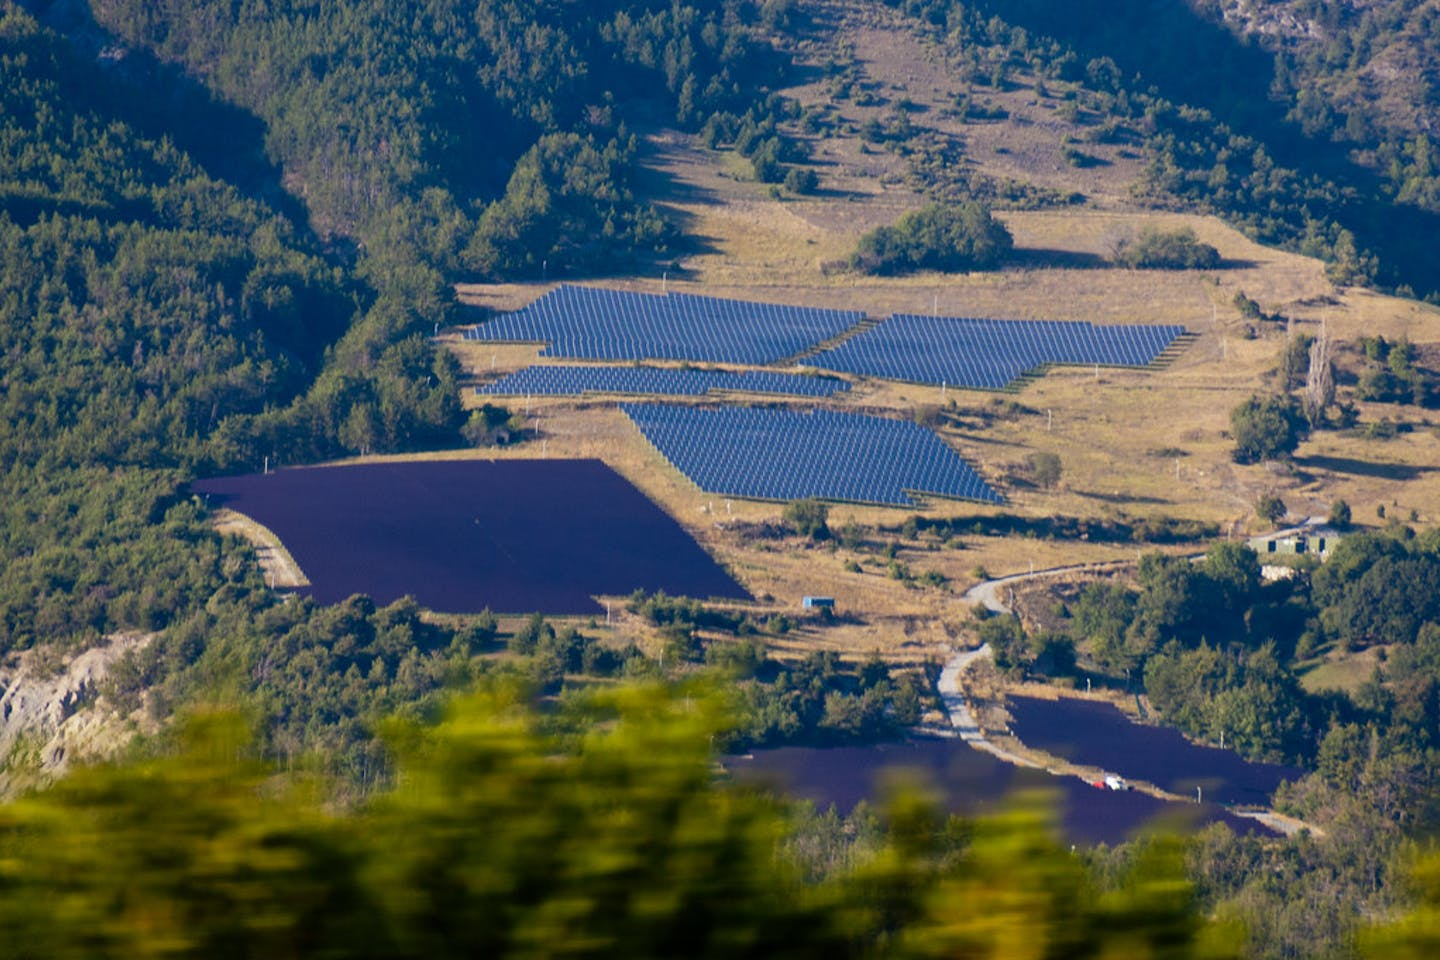 EU State aid: Commission approves €30.5 billion French scheme to support renewable energy